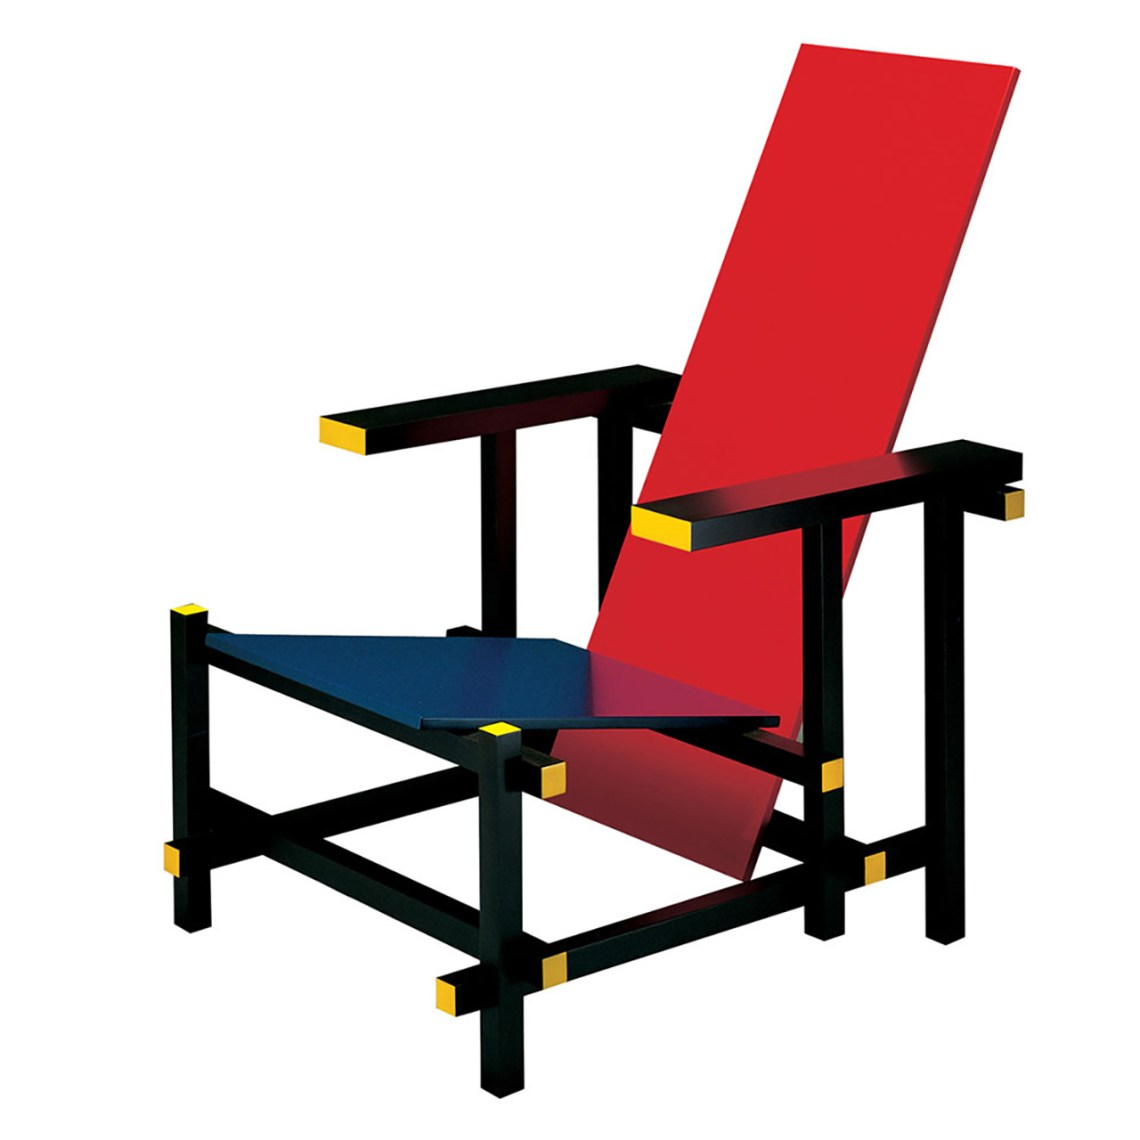 rietveld_red_blue